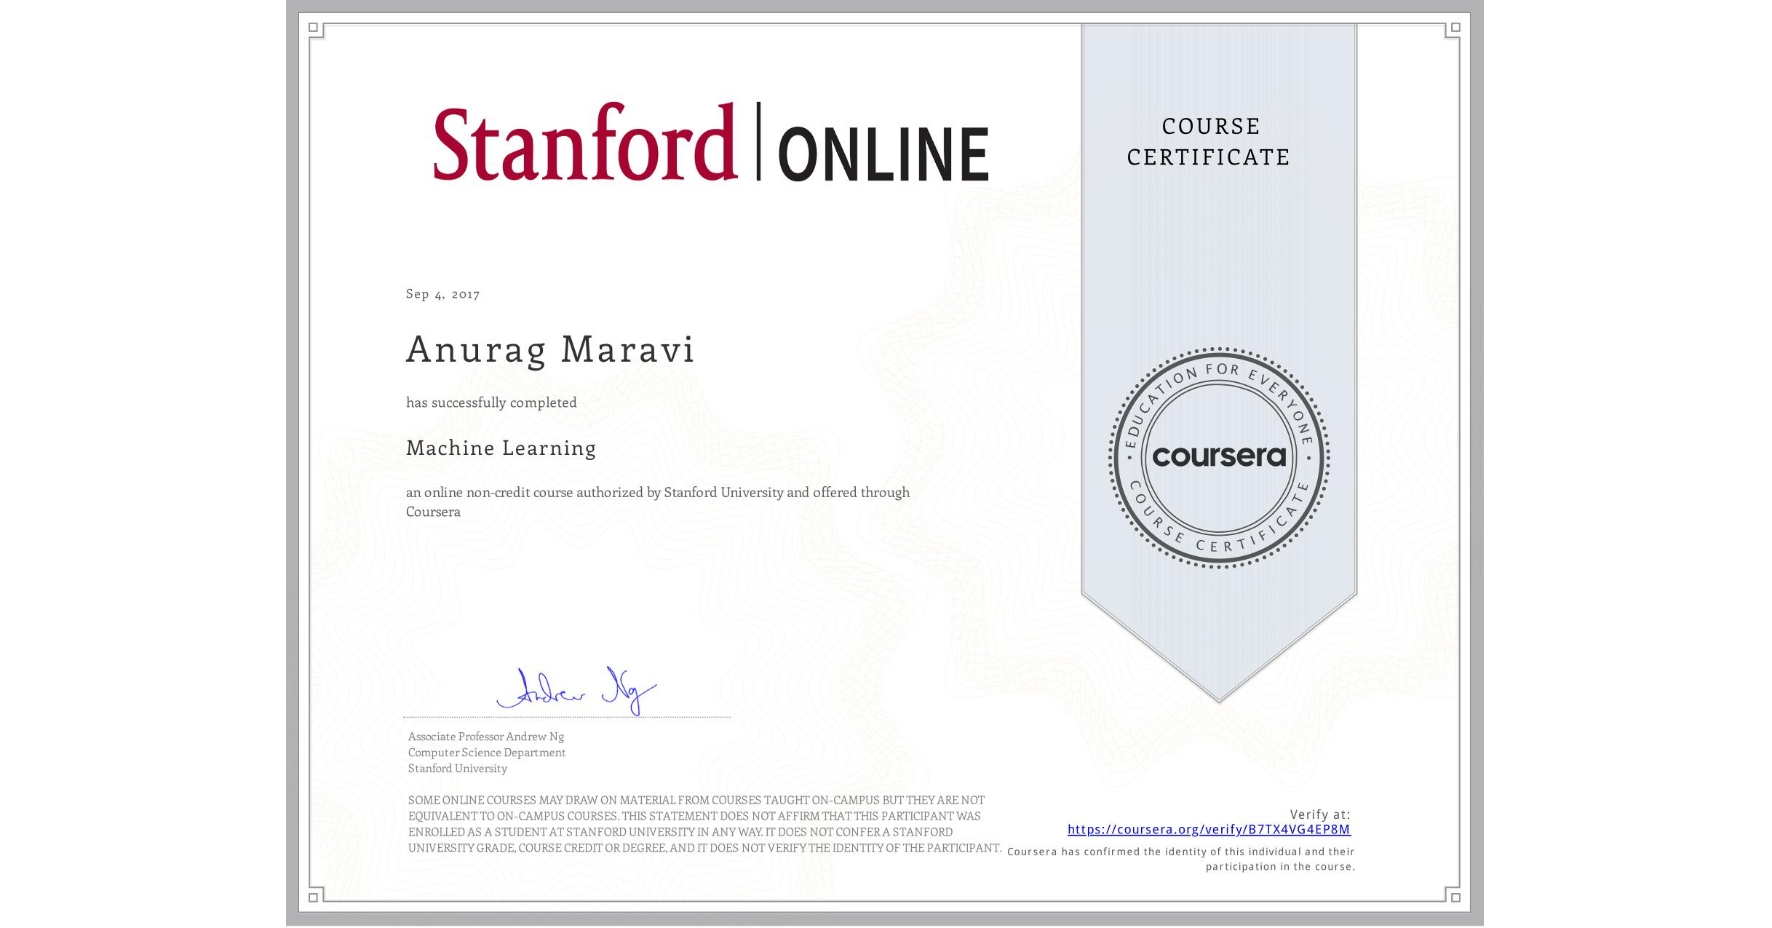 View certificate for Anurag Maravi, Machine Learning, an online non-credit course authorized by Stanford University and offered through Coursera